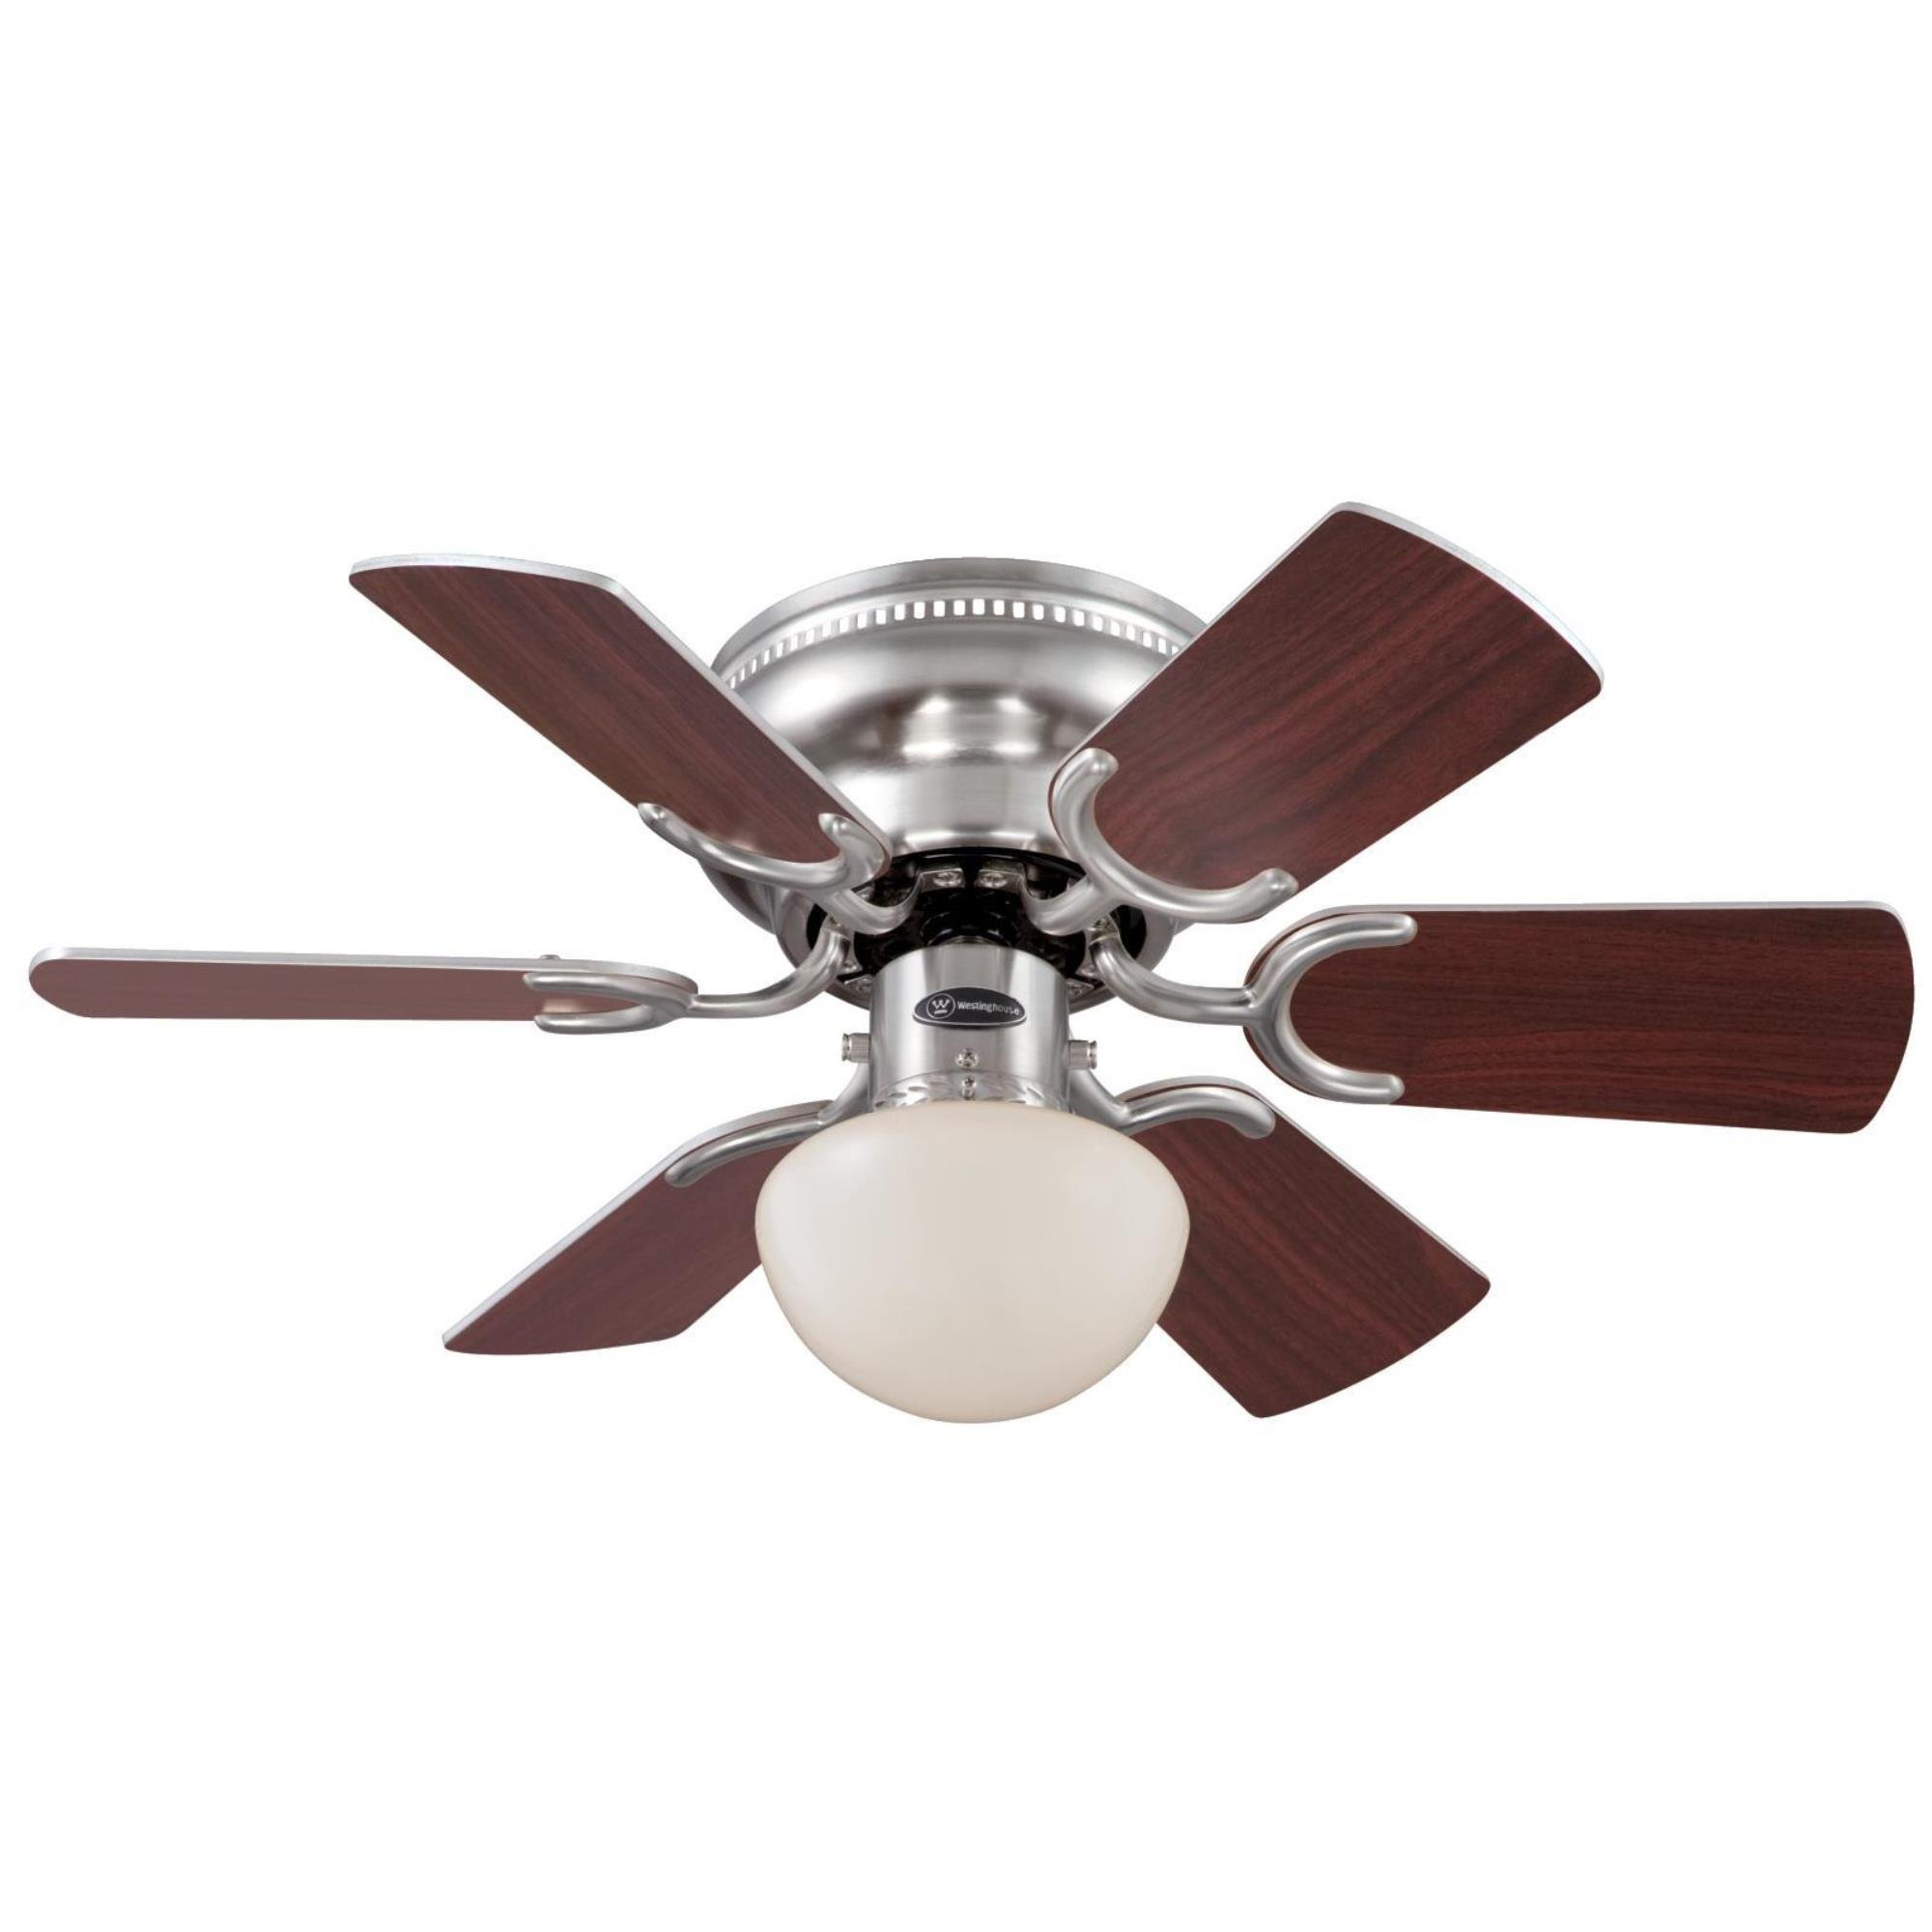 Westinghouse 7213300 Traditional Petite 30 inch Brushed Nickel Indoor Ceiling Fan, Light Kit with Opal Mushroom Glass